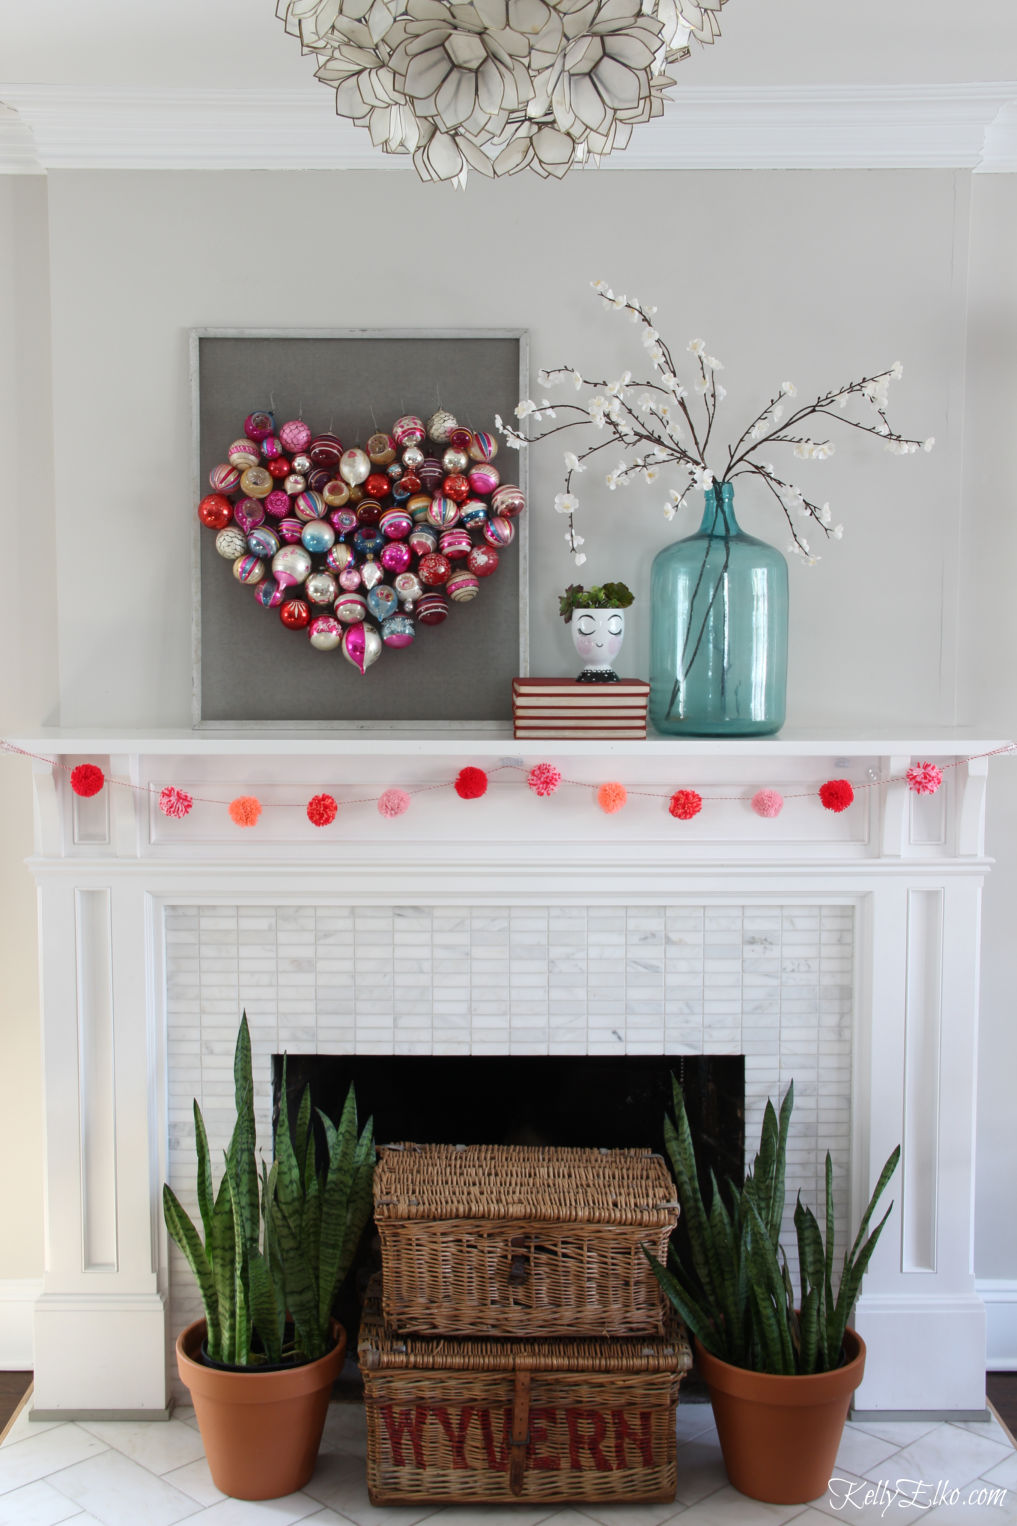 Creative Fireplace Screens kellyelko.com #fireplace #mantels #fireplacedecor #manteldecor #interiordecor #decorate